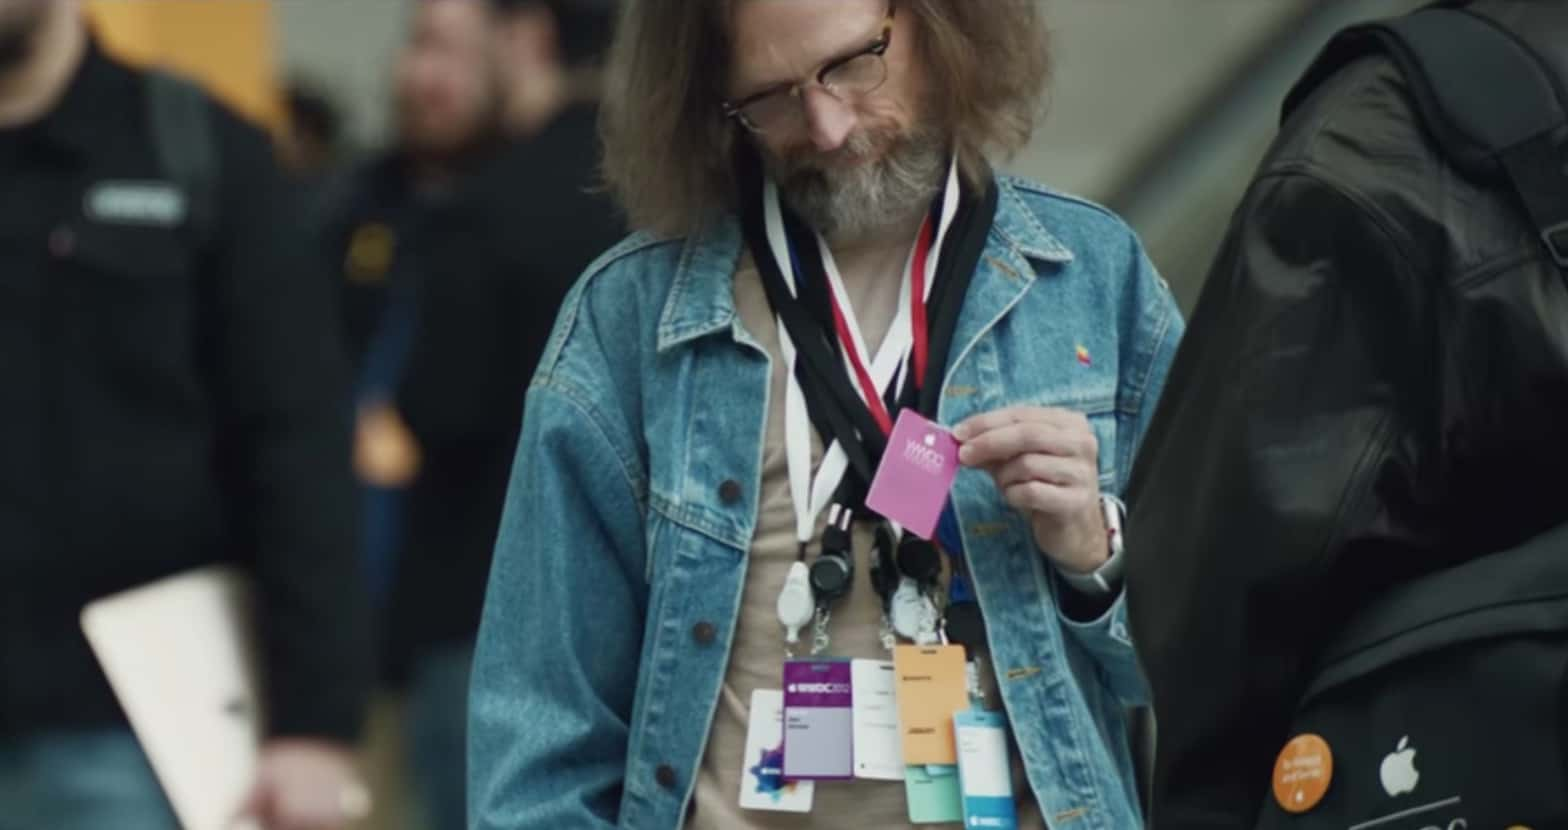 Self-deprecating humor rules in the Apple WWDC 2018 video about developers.